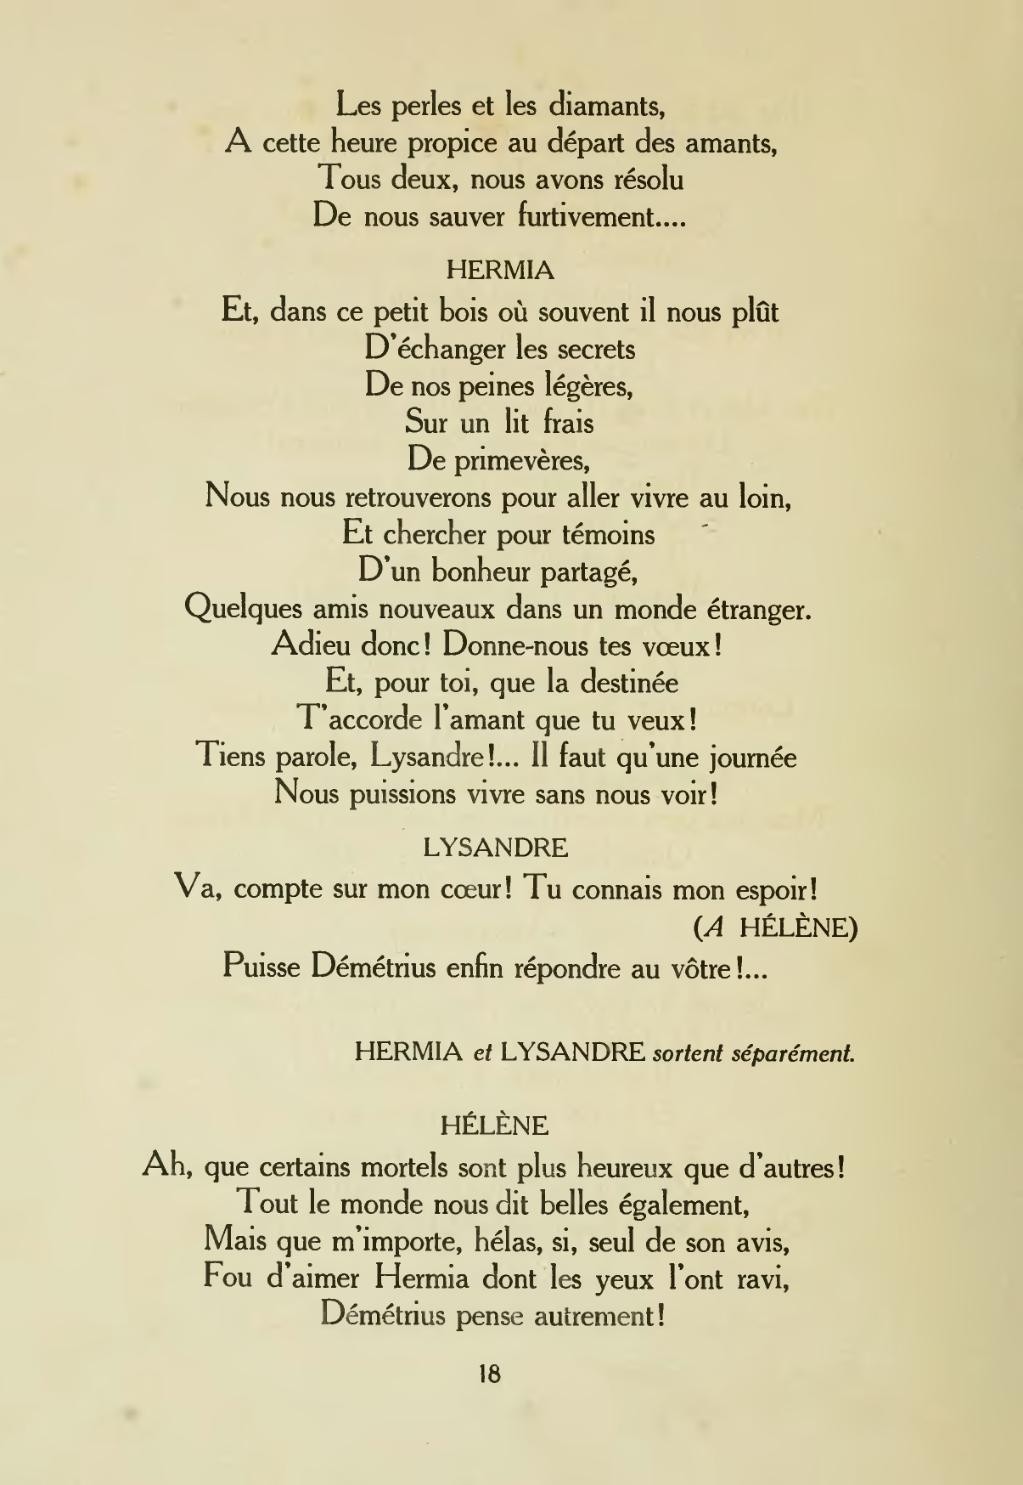 Pageshakespeare Un Songe De Nuit Dété Trad Spaak 1919